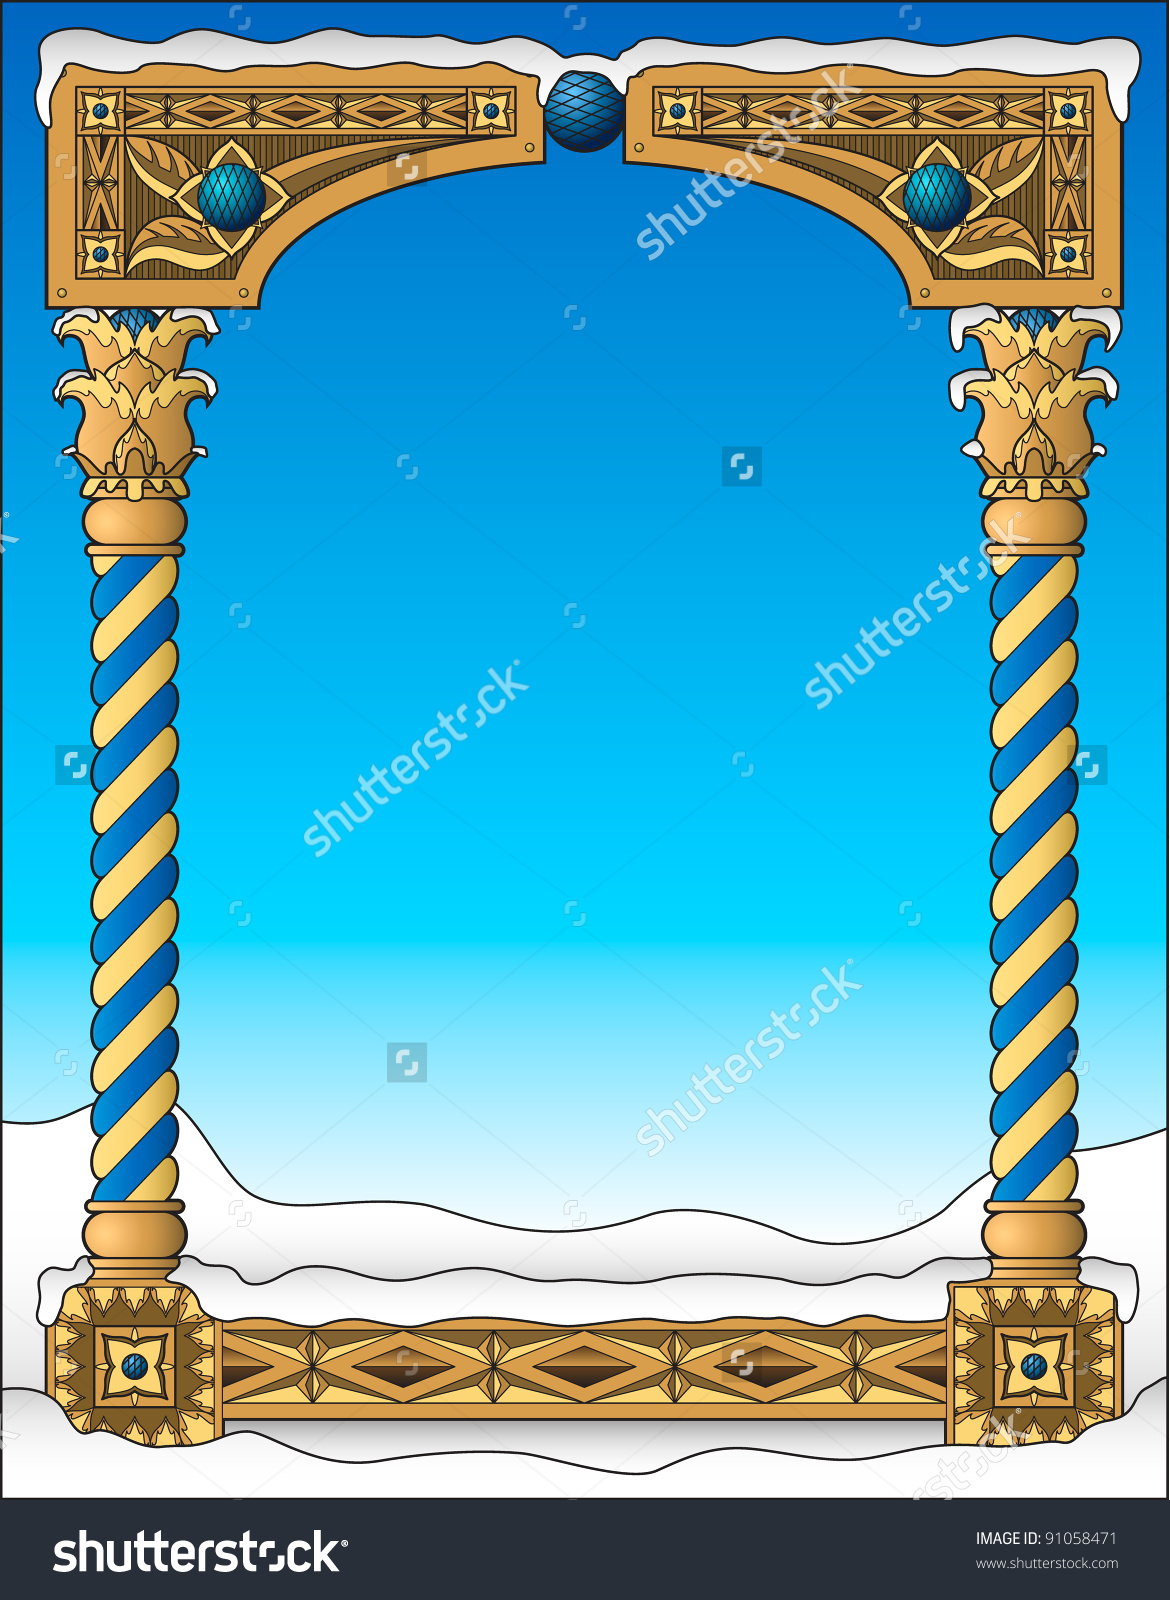 Snowy Traditional Frame Stock Vector Illustration 91058471.